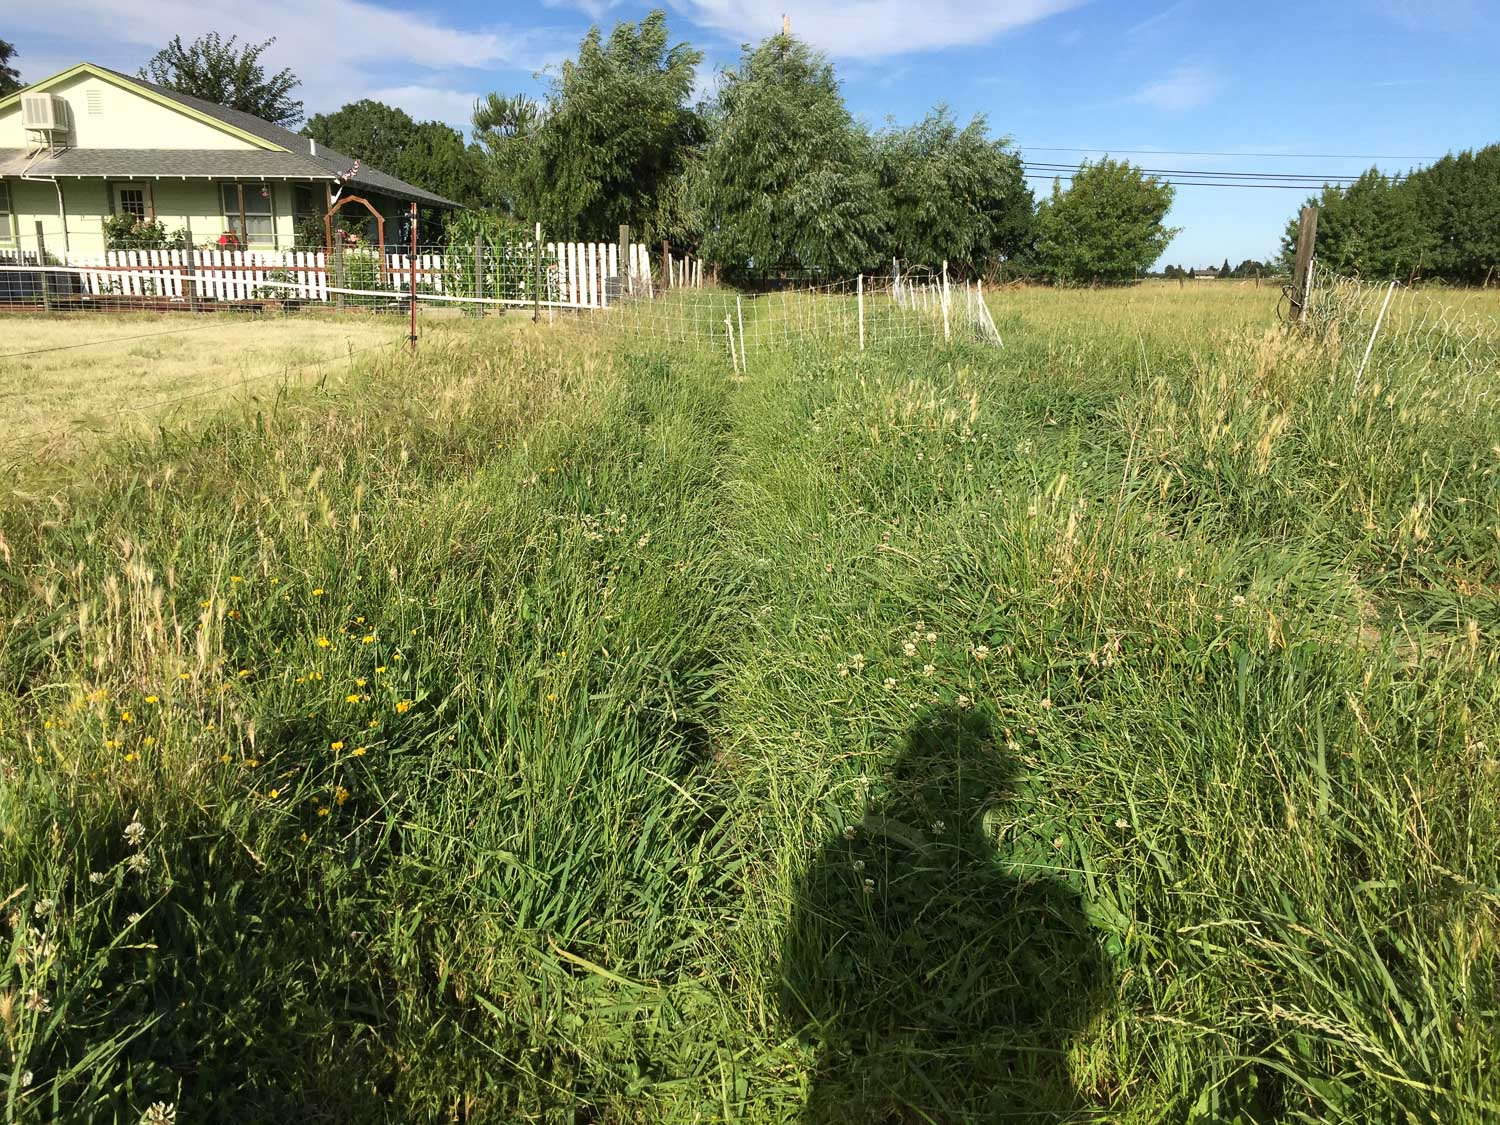 Irrigation ditch full of weeds